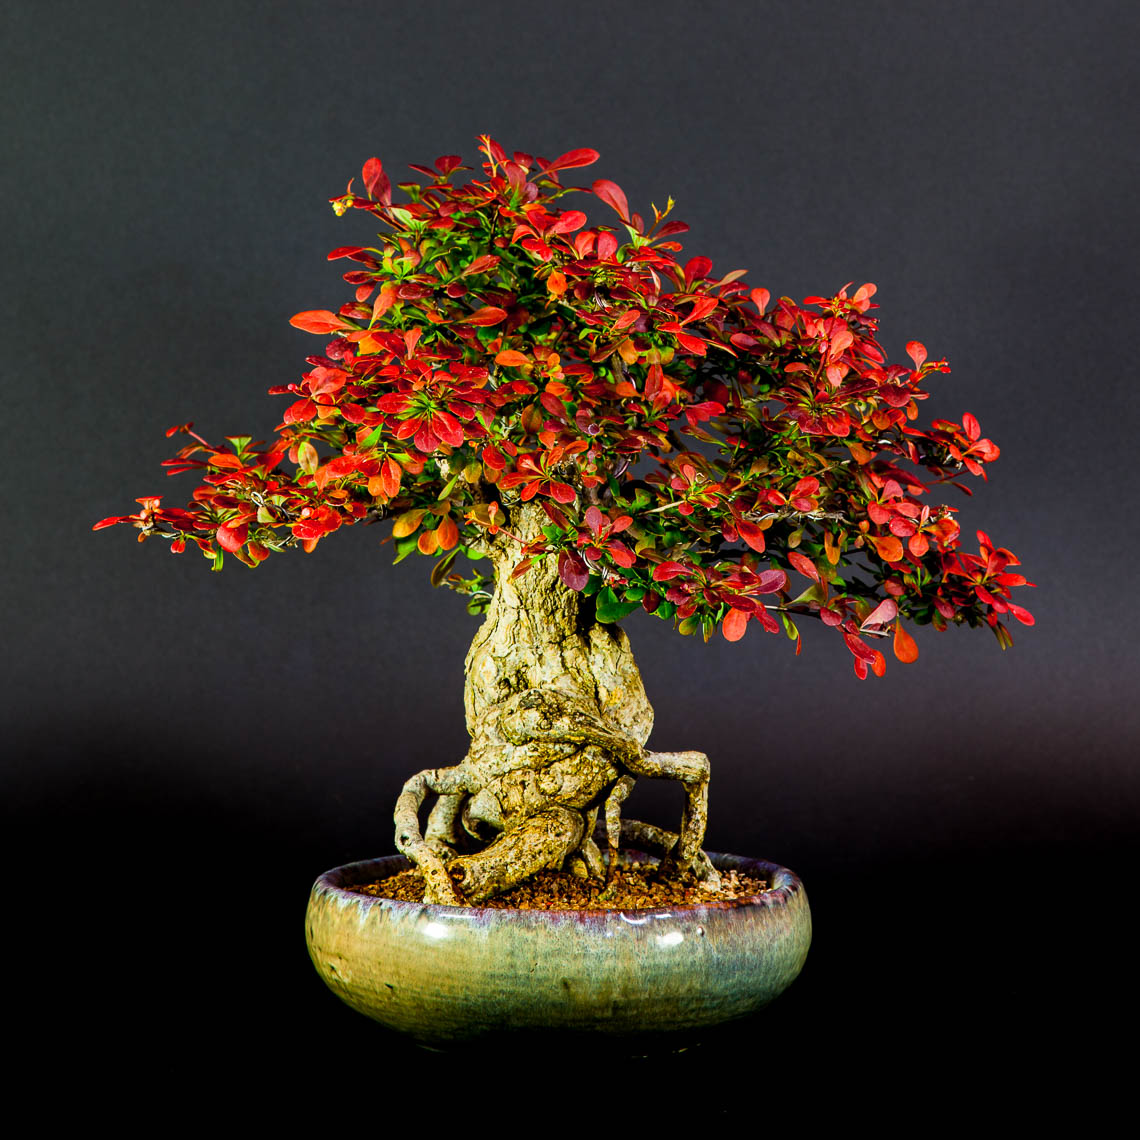 20160501_Bonsai-37-edit